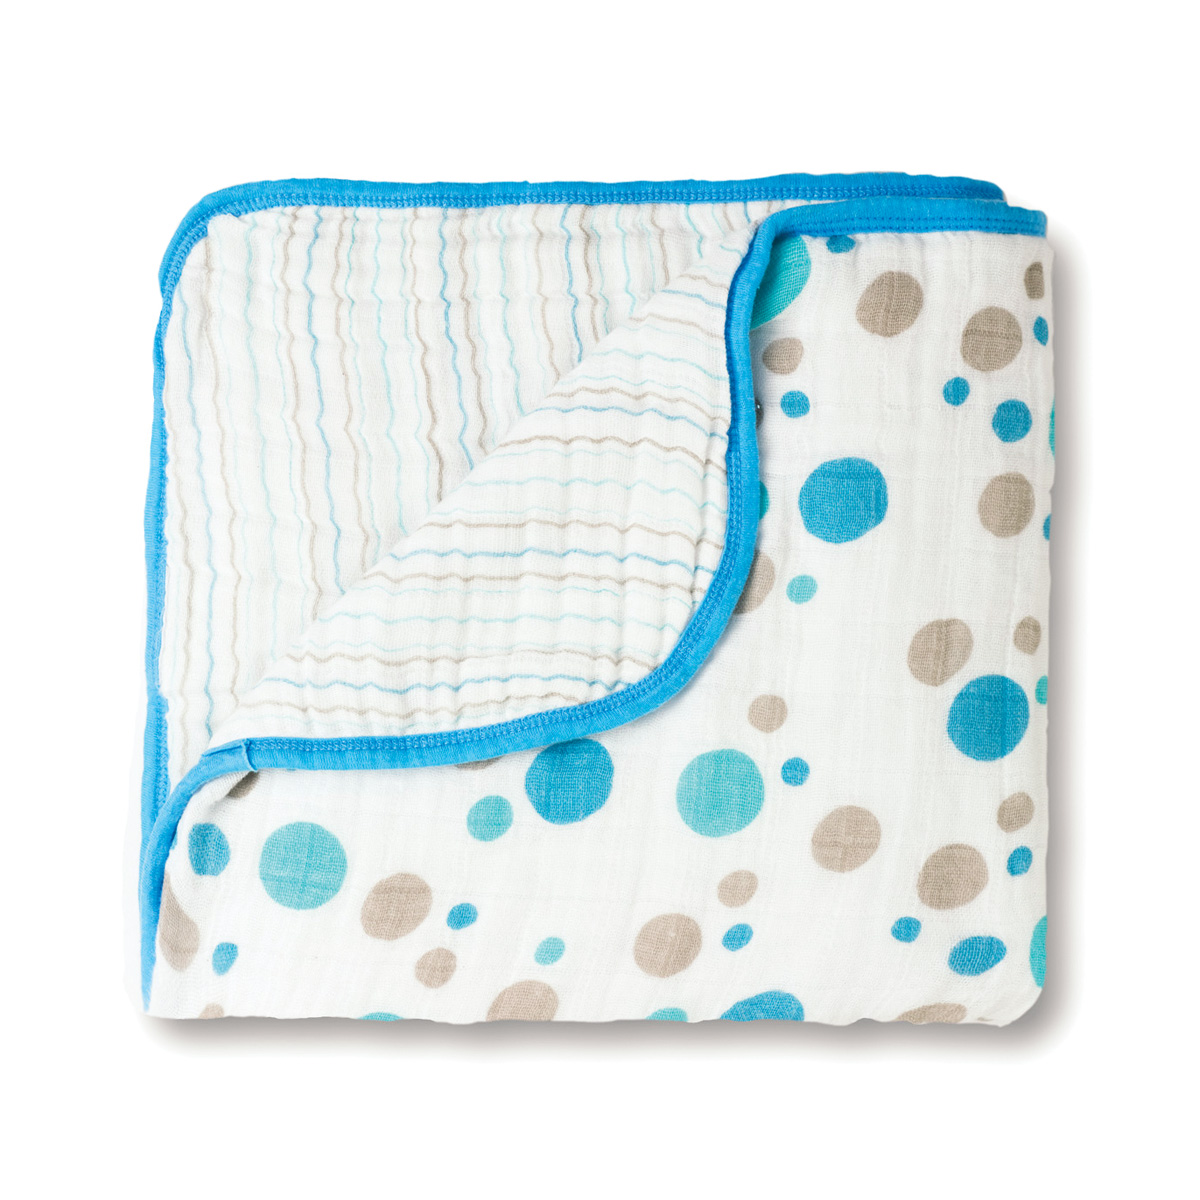 Aden + Anais Baby Blankets See All. Skip to end of links $ Was $ Save $ 3. Aden by aden + anais Muslin Changing Pad Cover Multi-Colored. Average rating: 5 out of 5 stars, based on 1 reviews 1 ratings. Go to previous slide, NaN of NaN. Go to next slide, NaN of NaN.